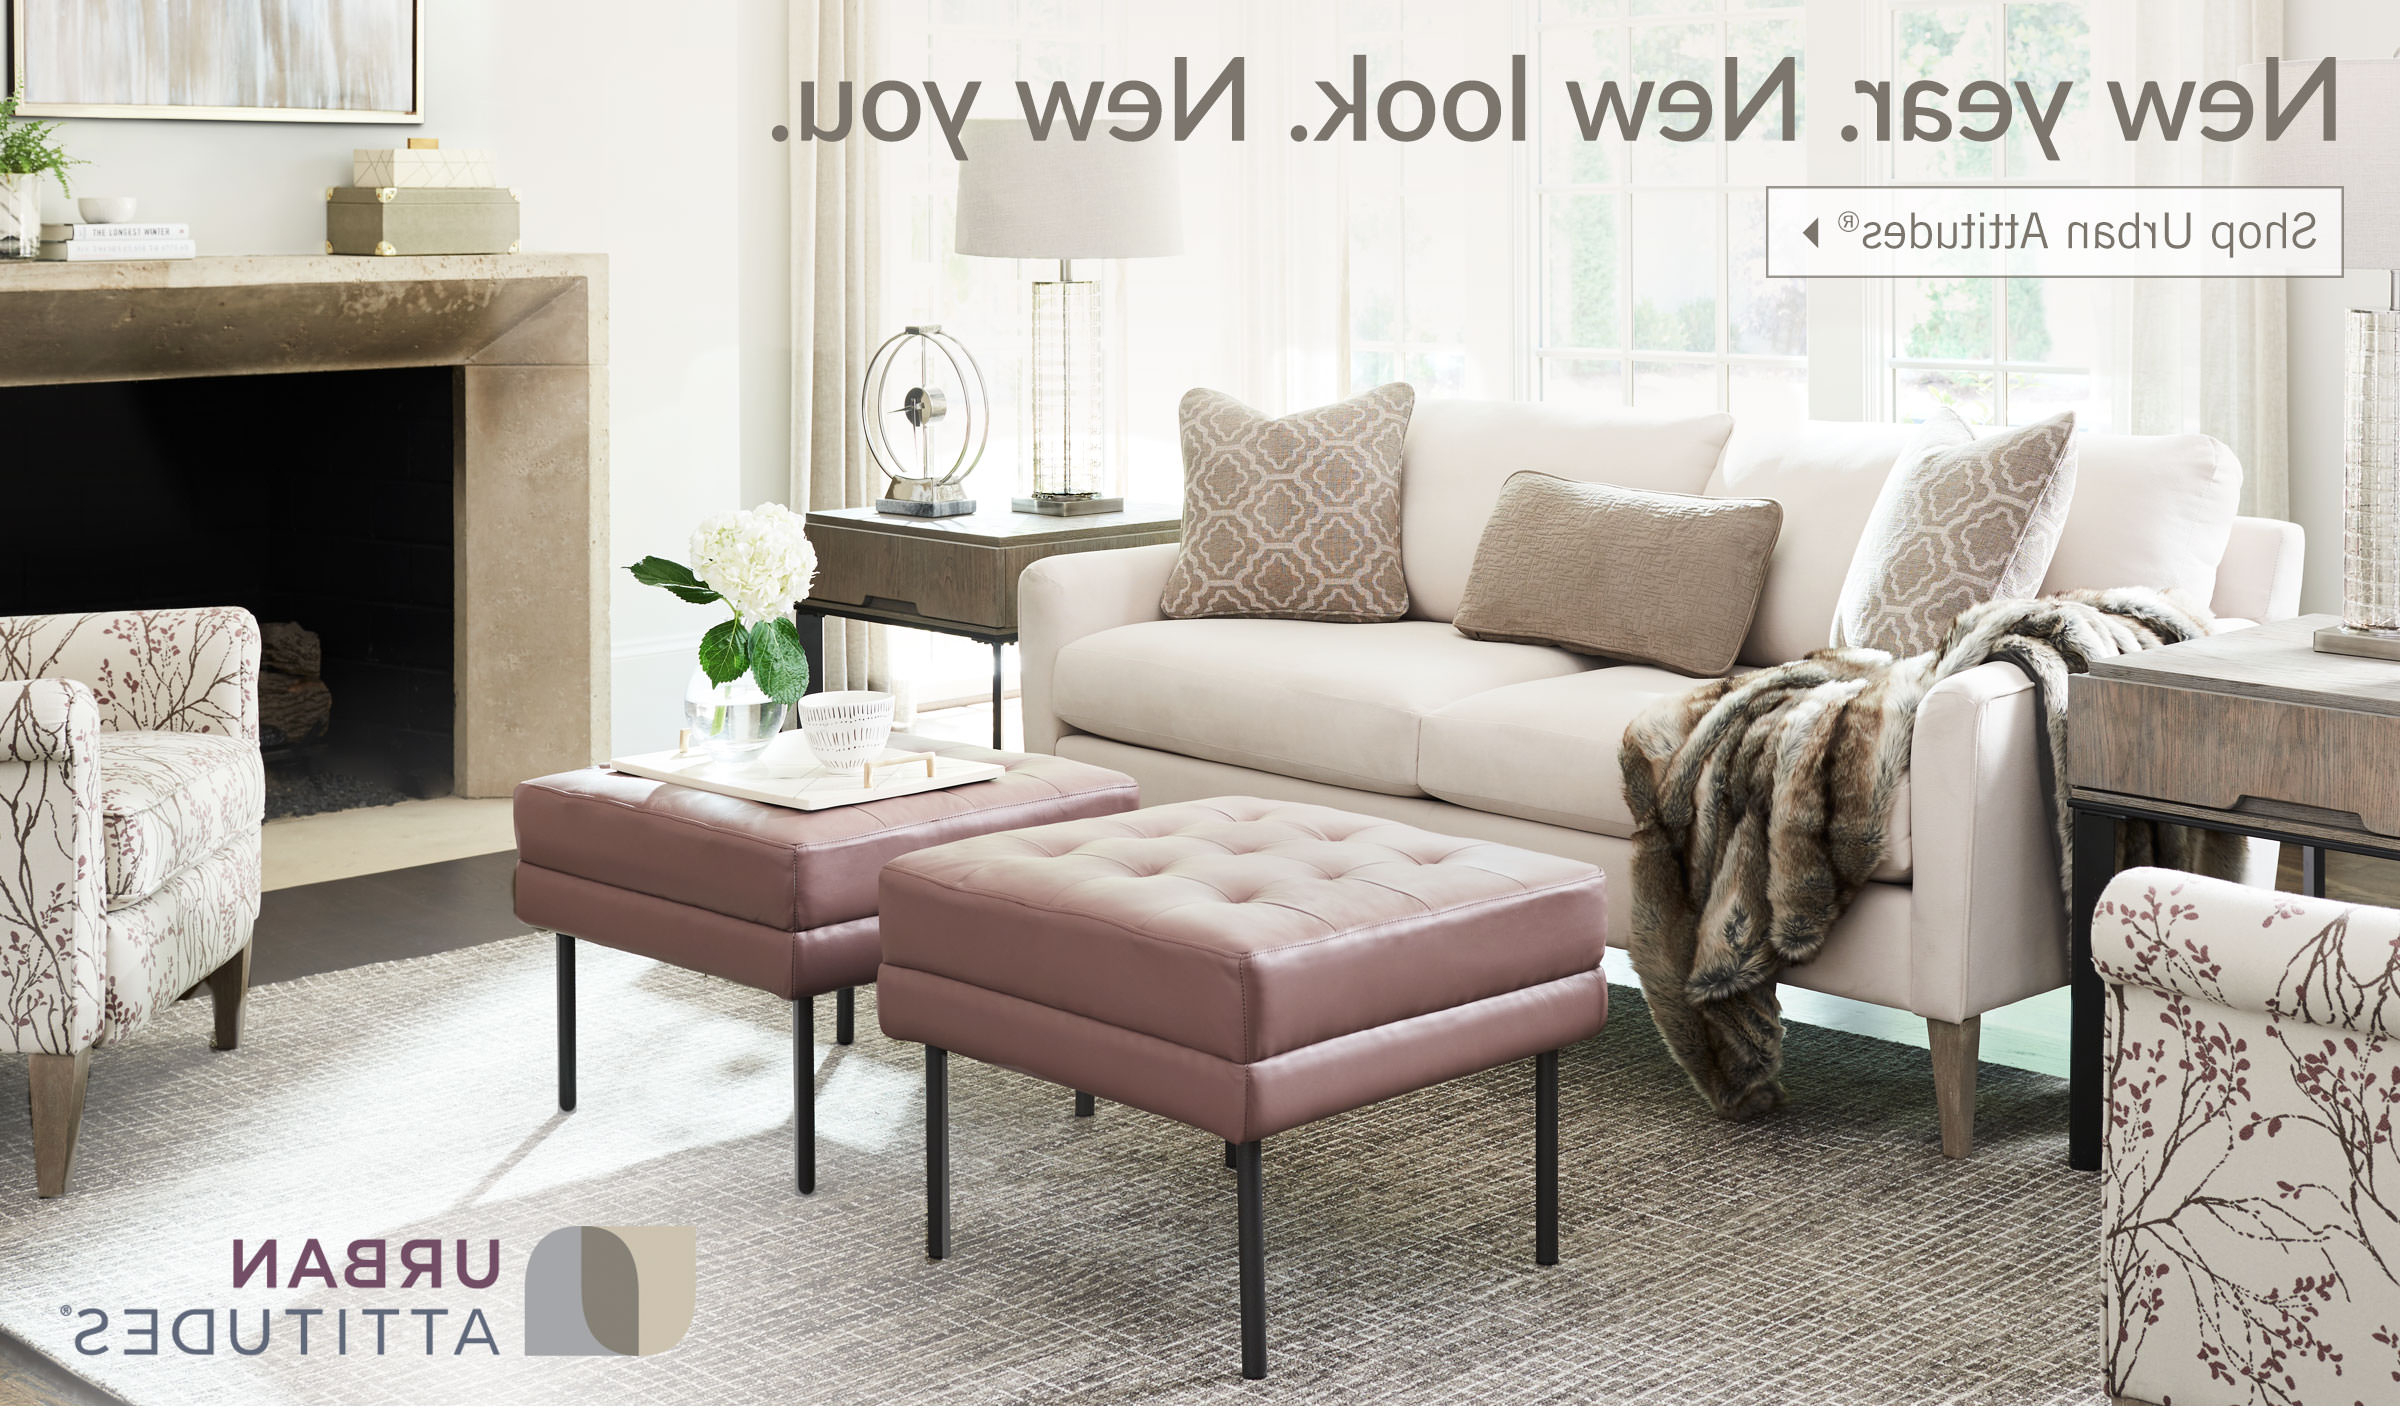 La Z Boy With Mansfield Cocoa Leather Sofa Chairs (View 6 of 20)